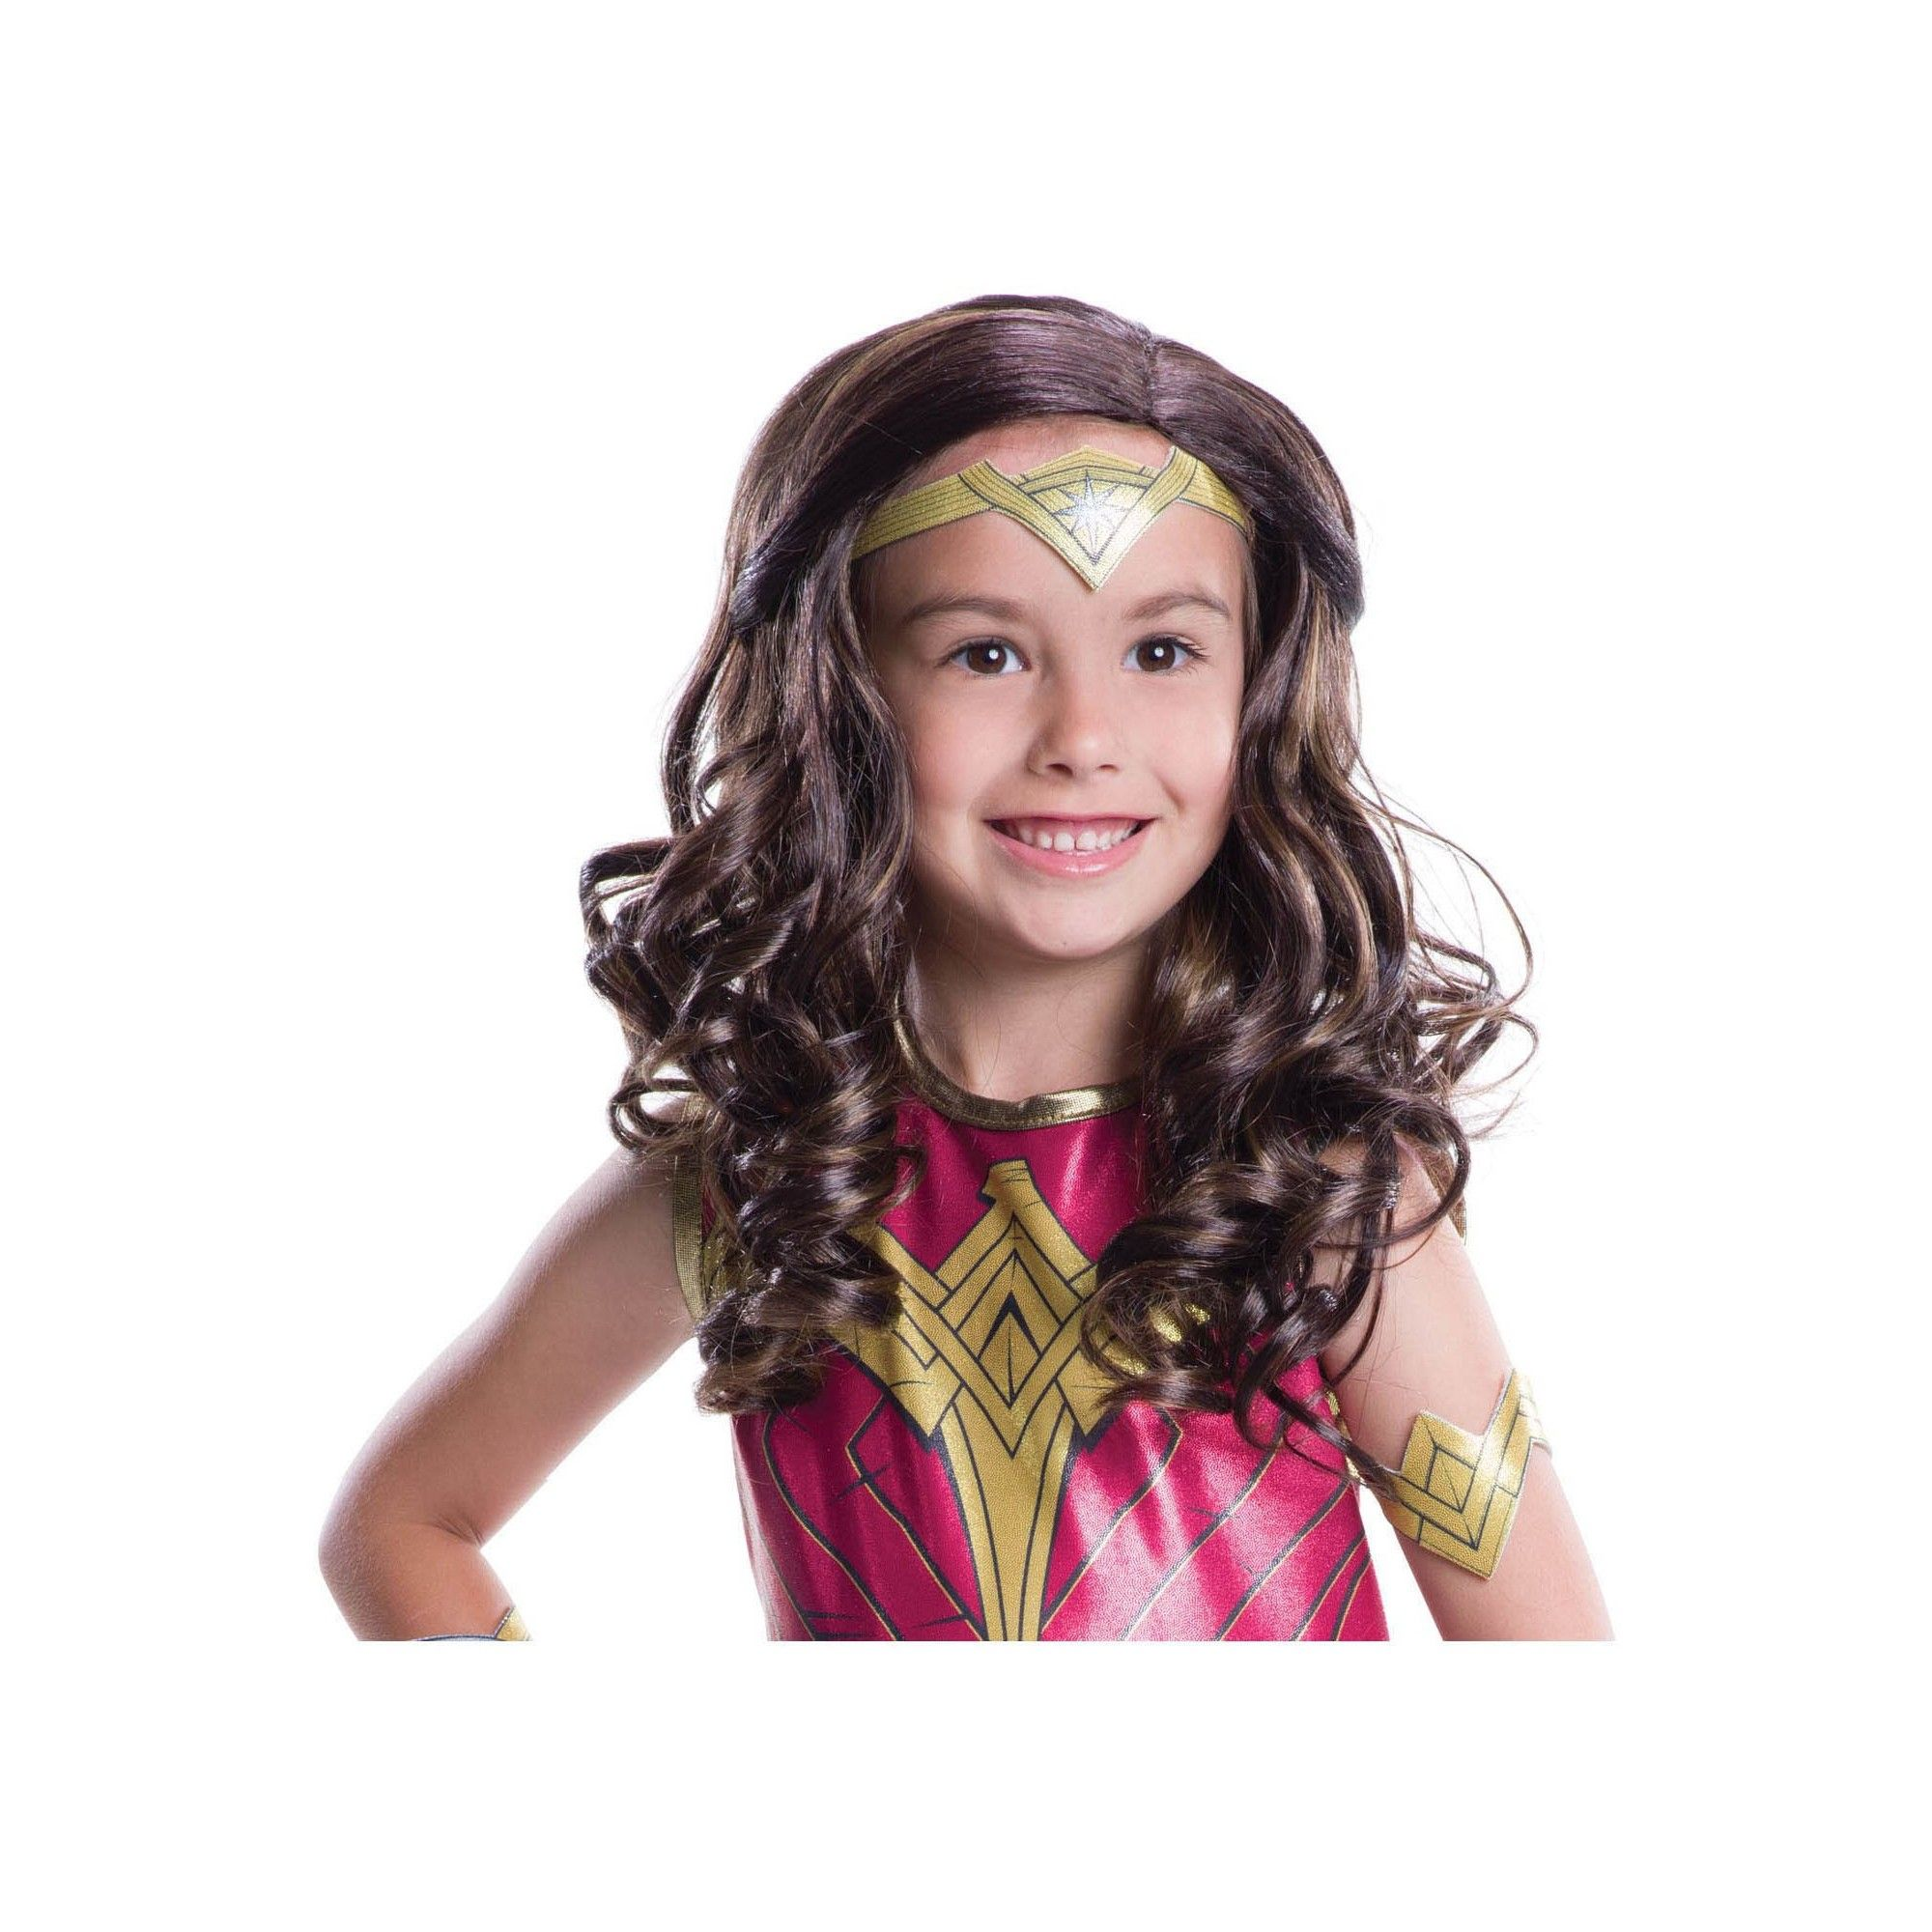 Girlsu Wonder Woman Wig MultiColored  Products  Pinterest